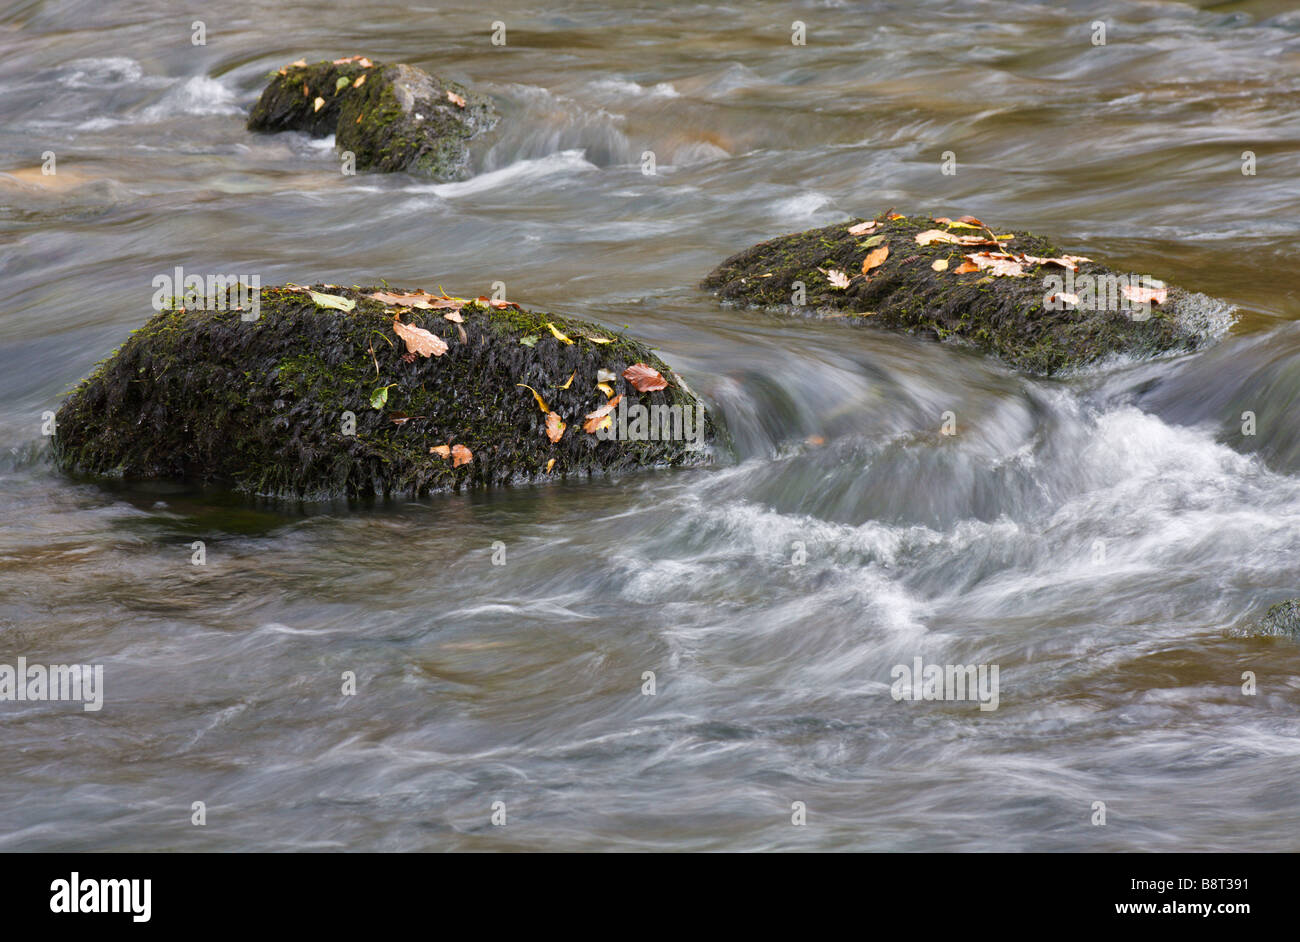 River with mossy boulders moving water and autumn leaves - Stock Image